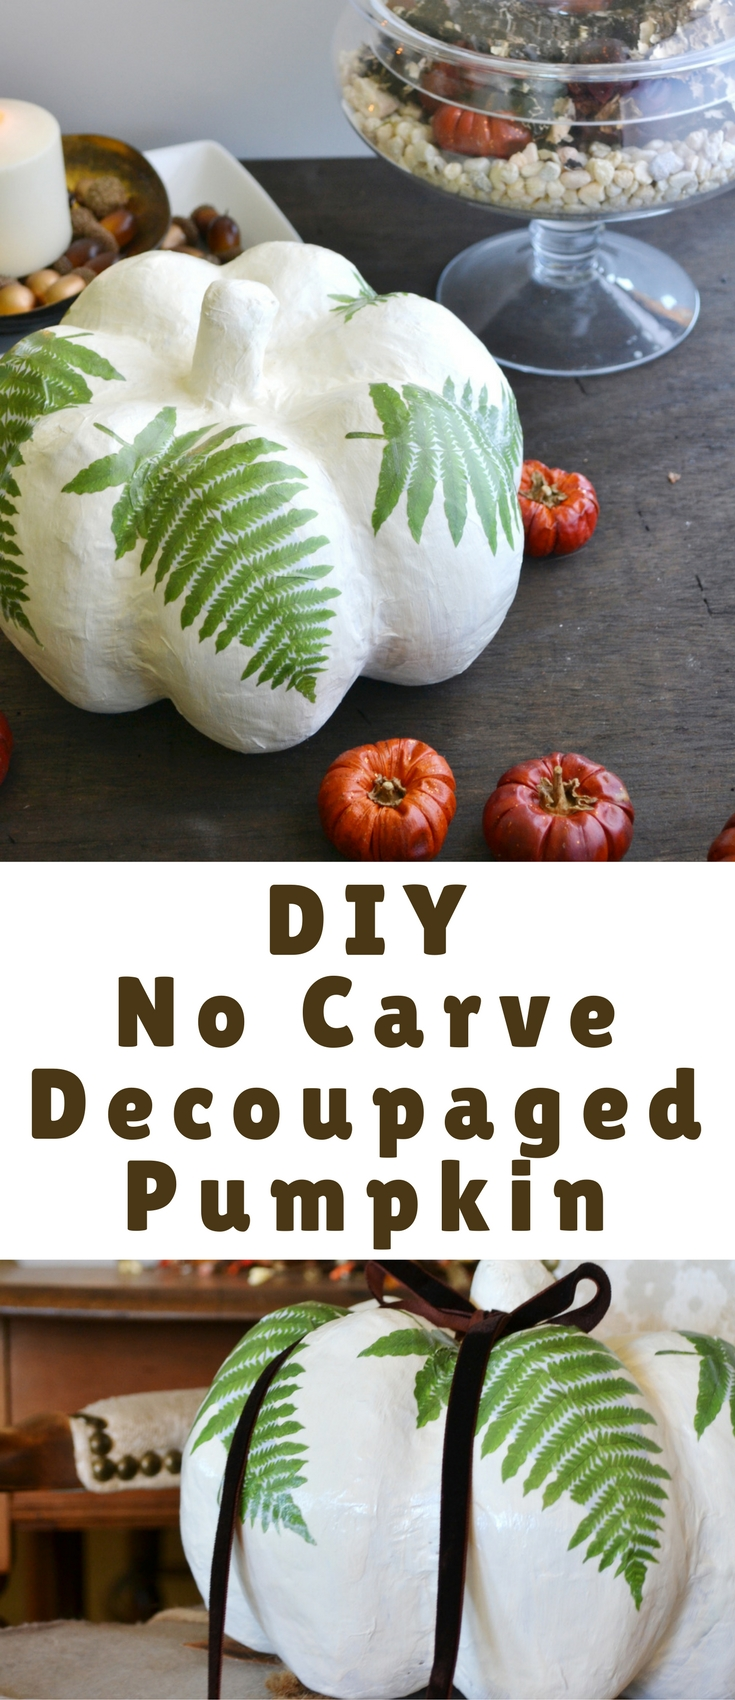 This tutorial will last for years to come, because it's on a paper mache pumpkin, but I think it would look great on a real pumpkin too, just be sure not to store it for a year. I can tell you from experience, pumpkins don't last that long!